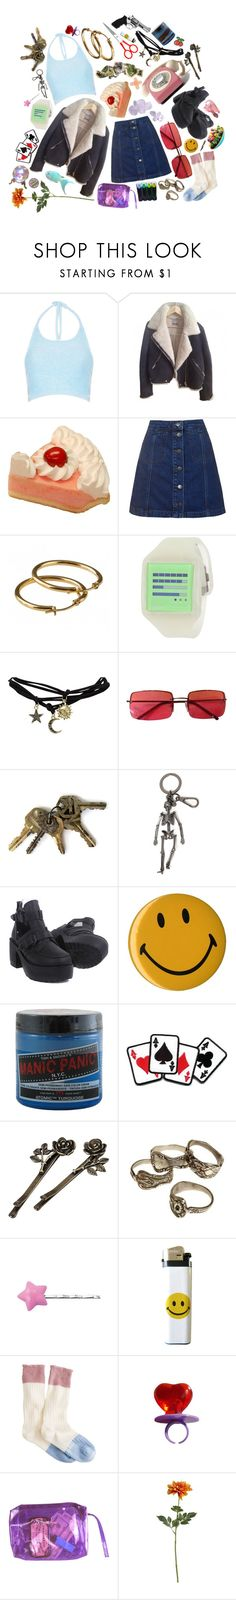 """""""watch me"""" by reslain ❤ liked on Polyvore featuring Motel, Topshop, Nooka, Wet Seal, ...Lost, xO Design, Gucci, Alexander McQueen, Manic Panic NYC and Retrò"""